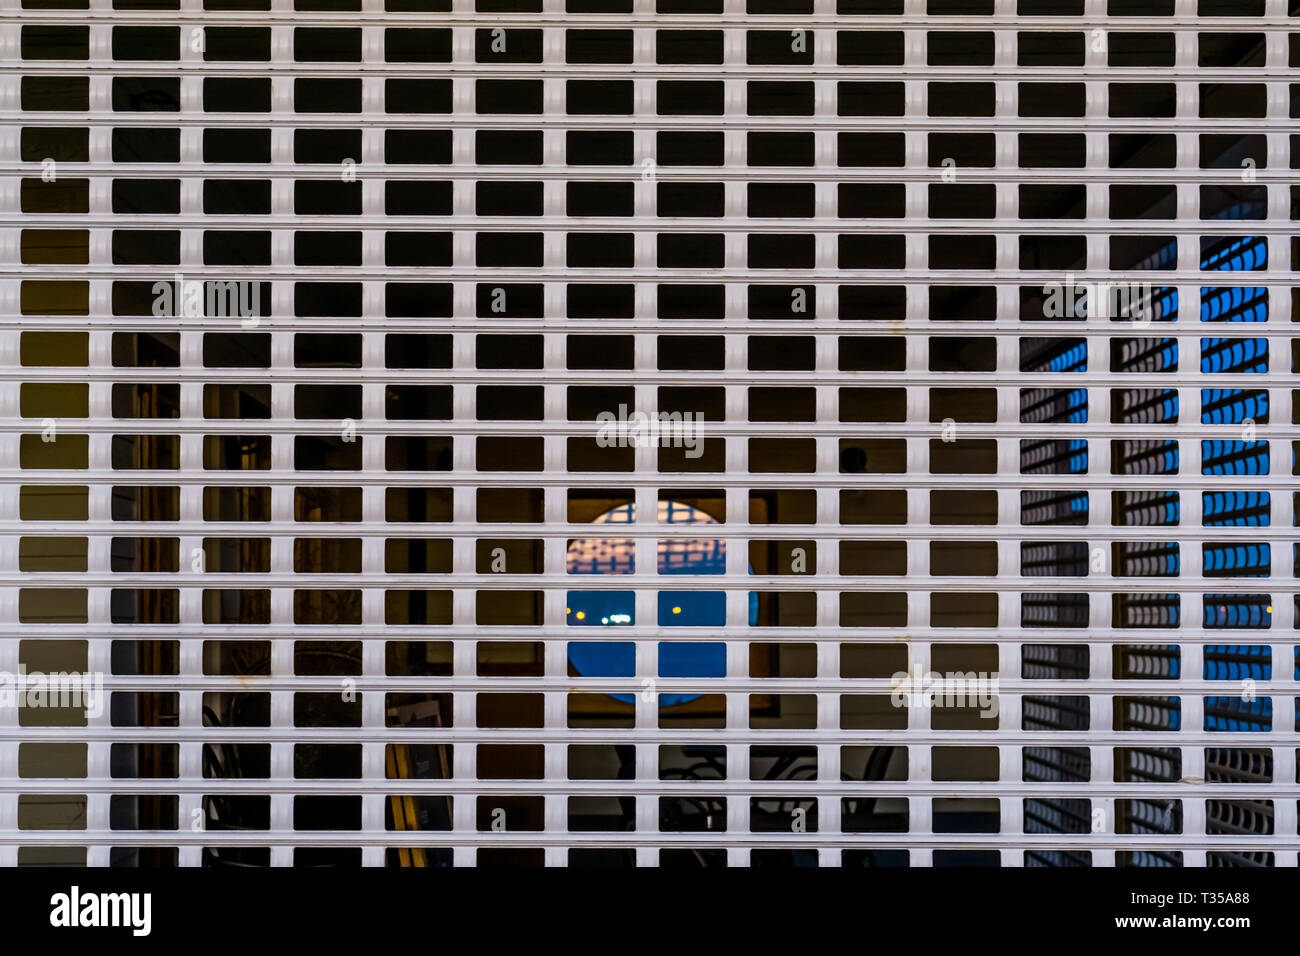 pattern of a closed shutter with holes you can see through, security system for the catering industry, closing time background - Stock Image